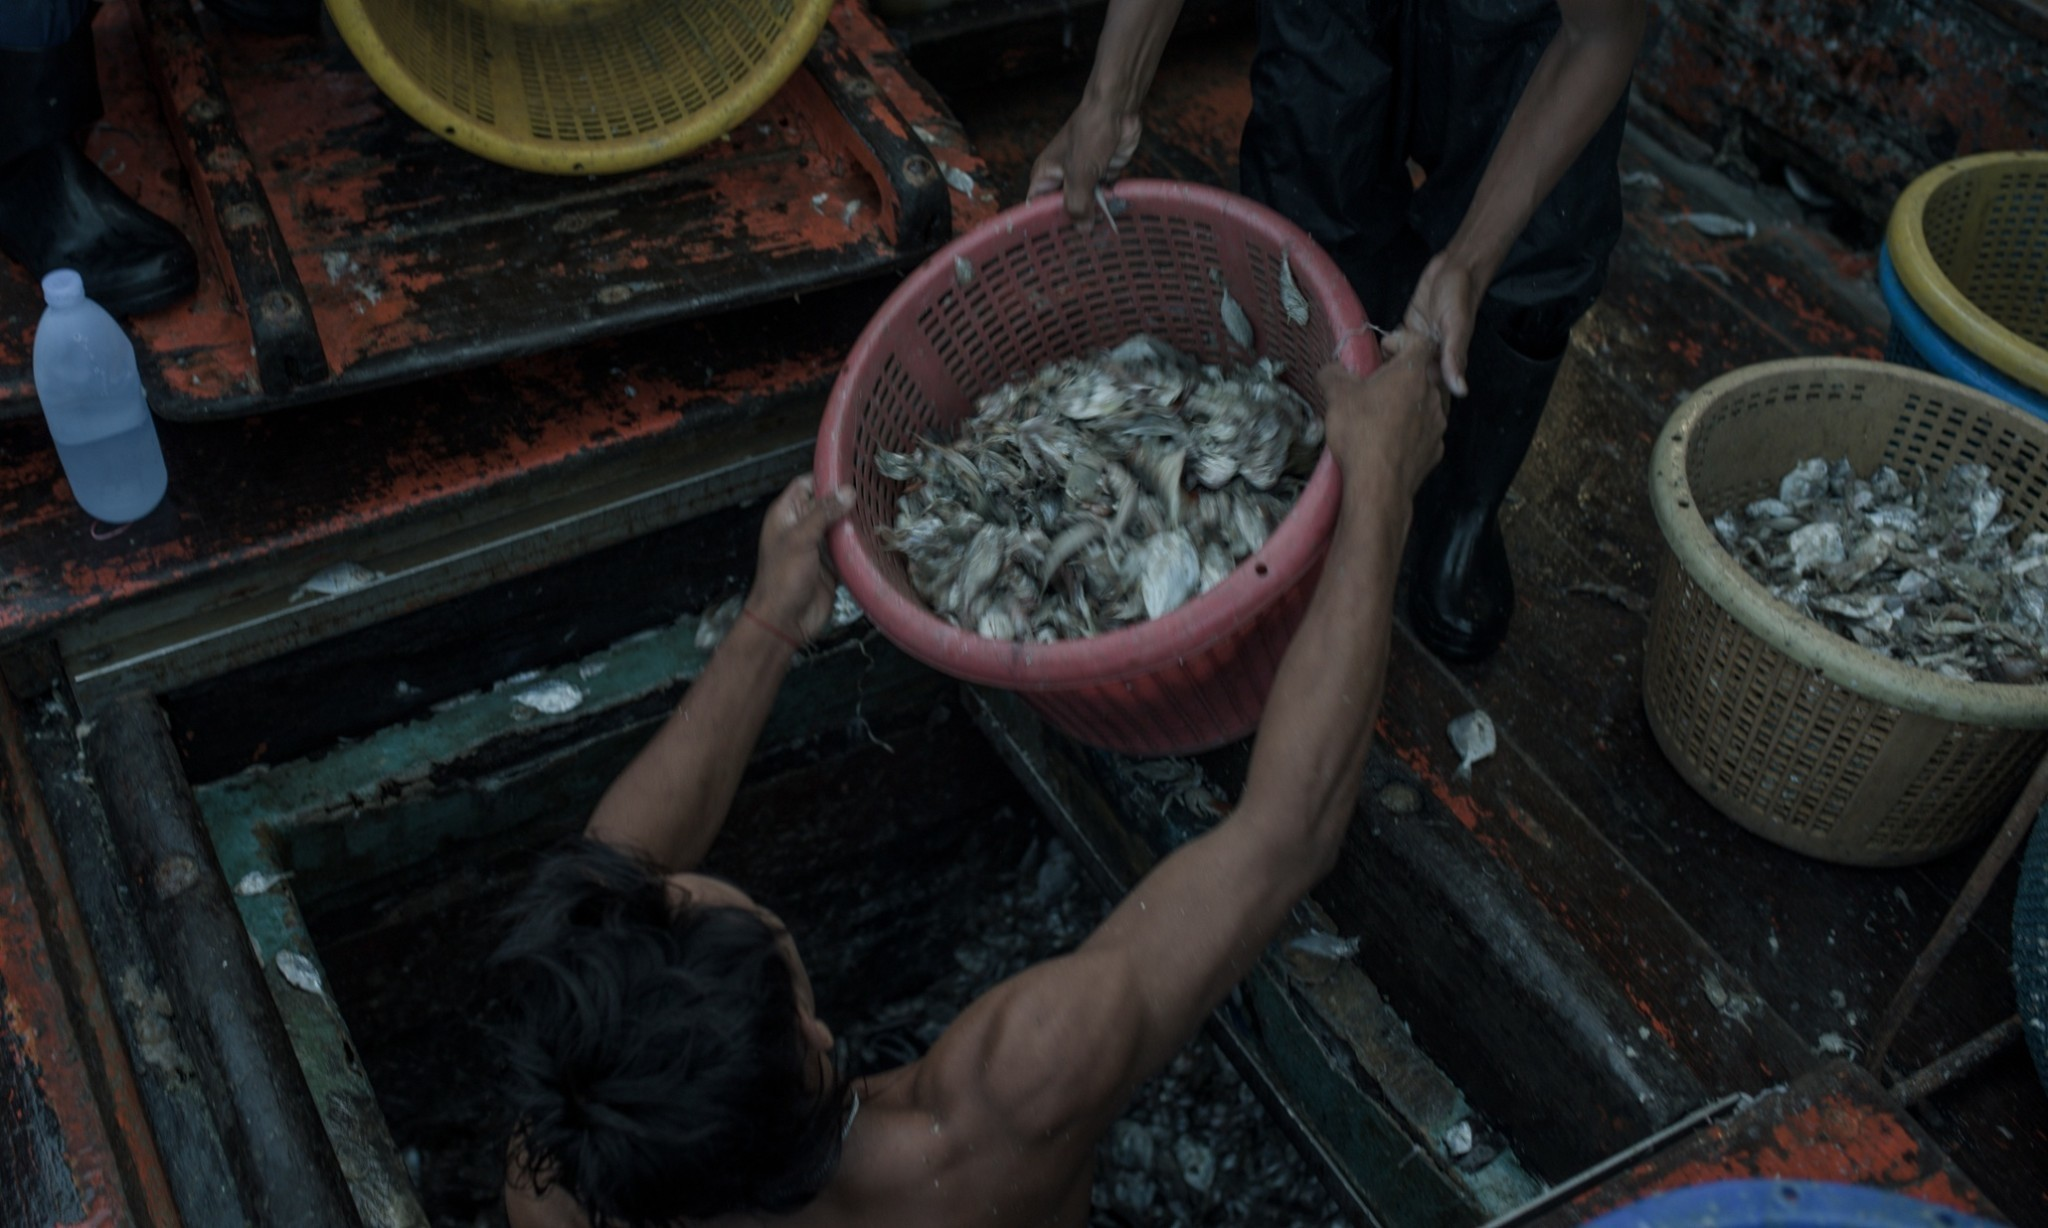 Revealed: how the Thai fishing industry trafficks, imprisons and enslaves